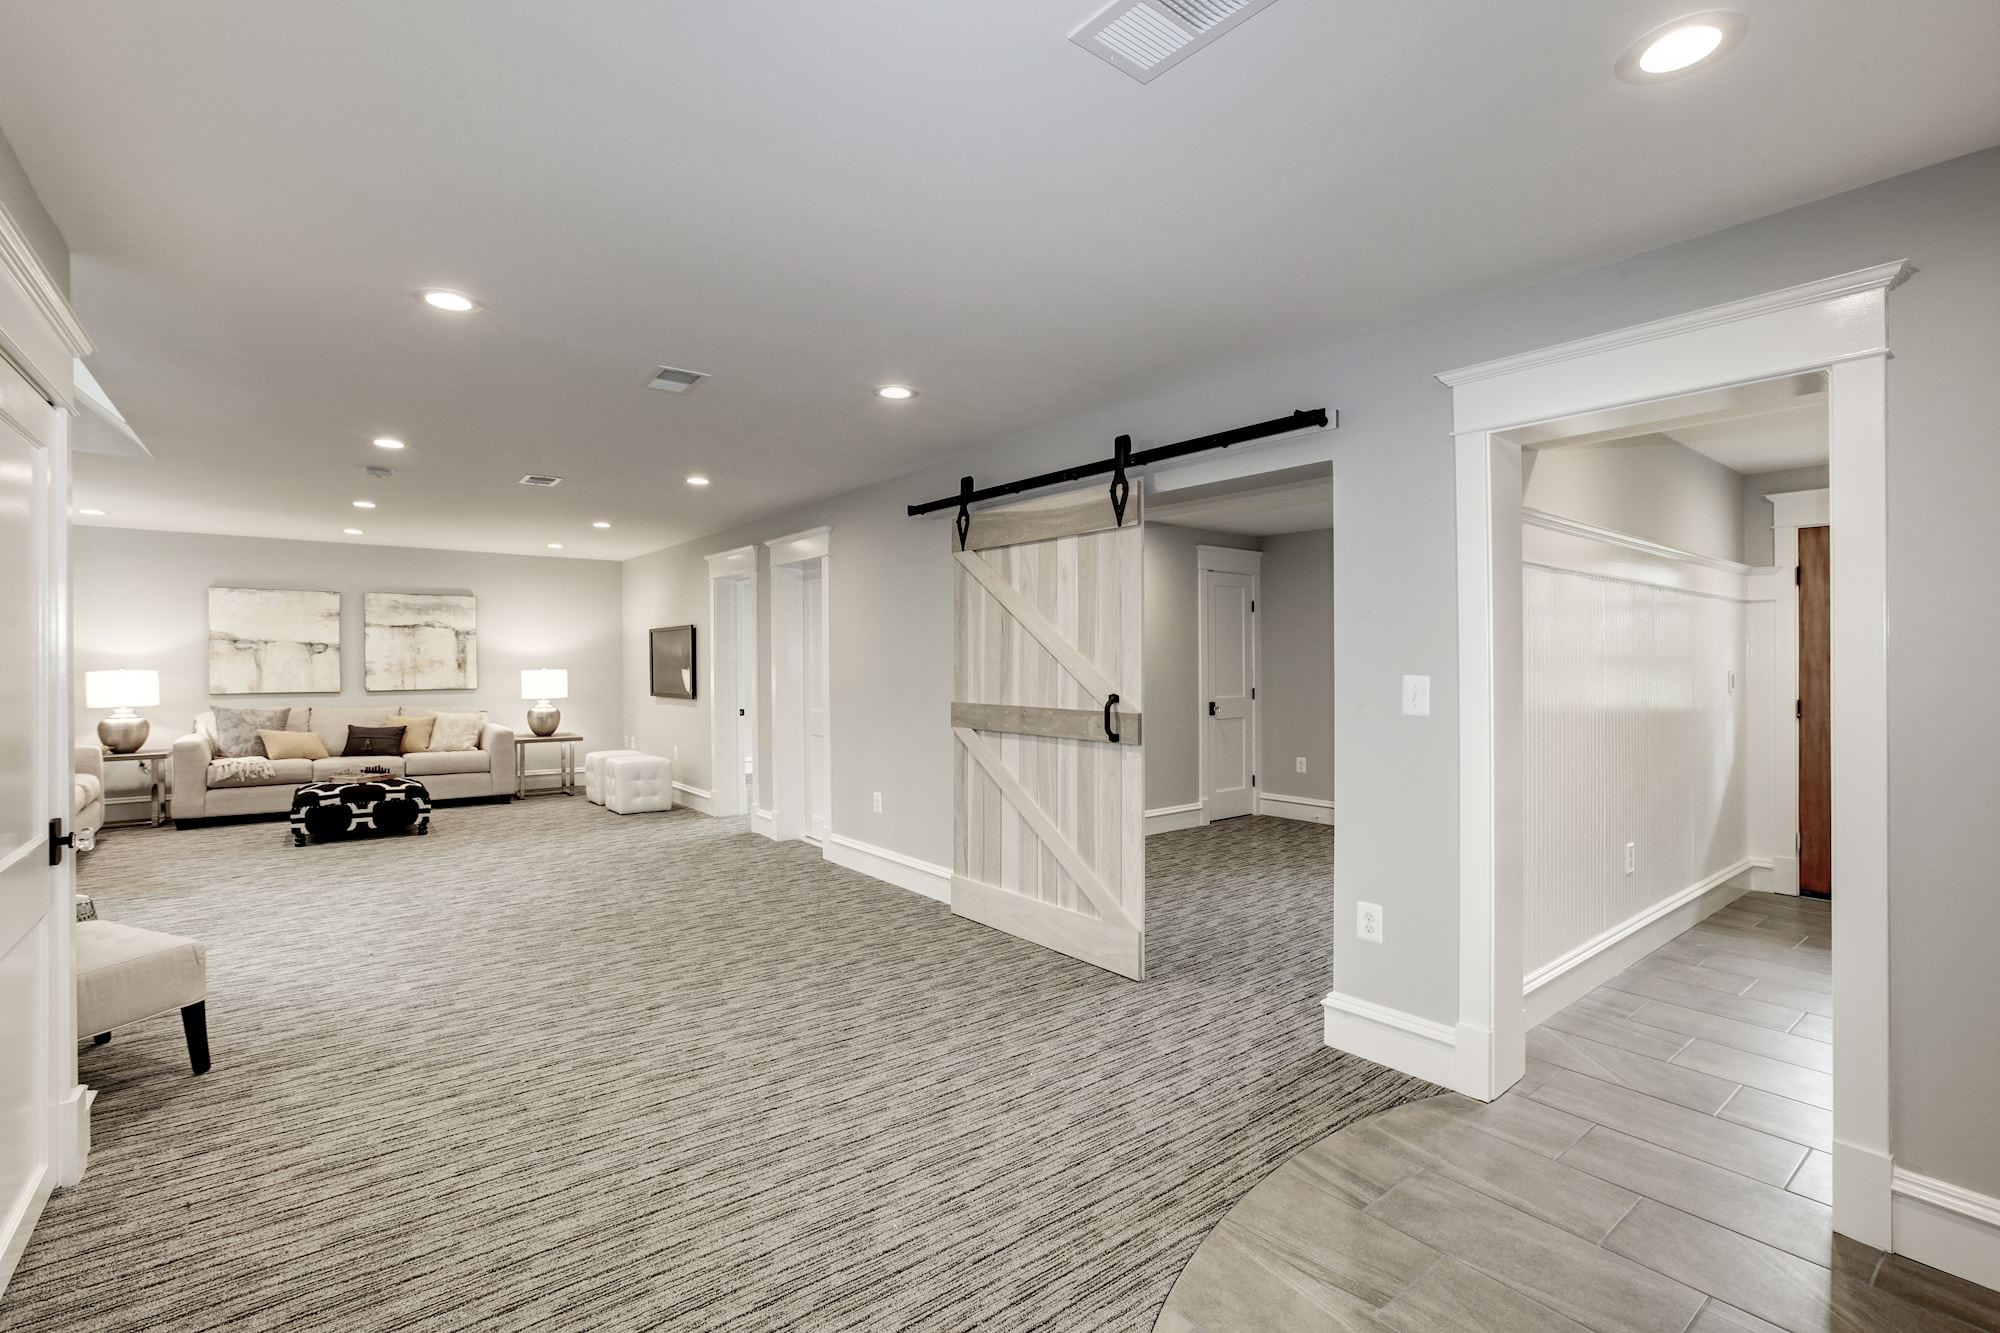 Lower level. Barn door leads to bonus room Custom Home by Custom Builder, North Arlington, VA 22207